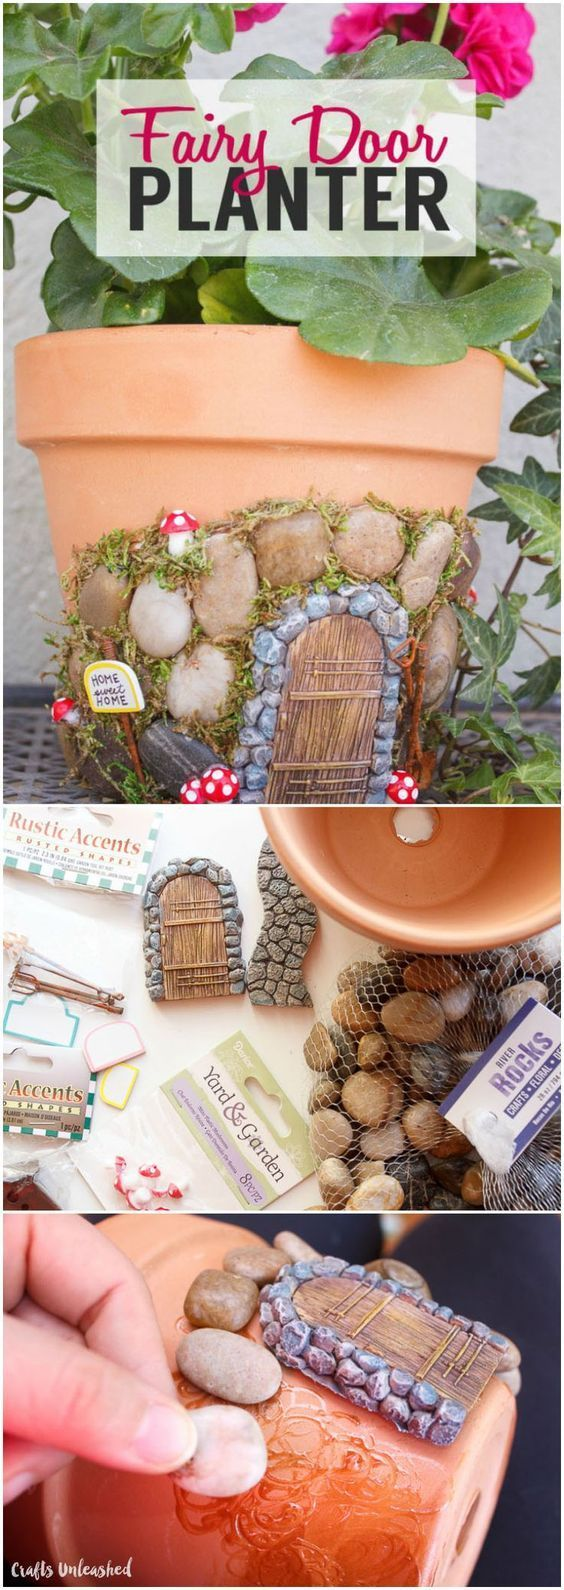 If you're into fairy gardens, you're going to love this DIY fairy house planter. This working planter is decorated with your favorite fairy miniatures!: